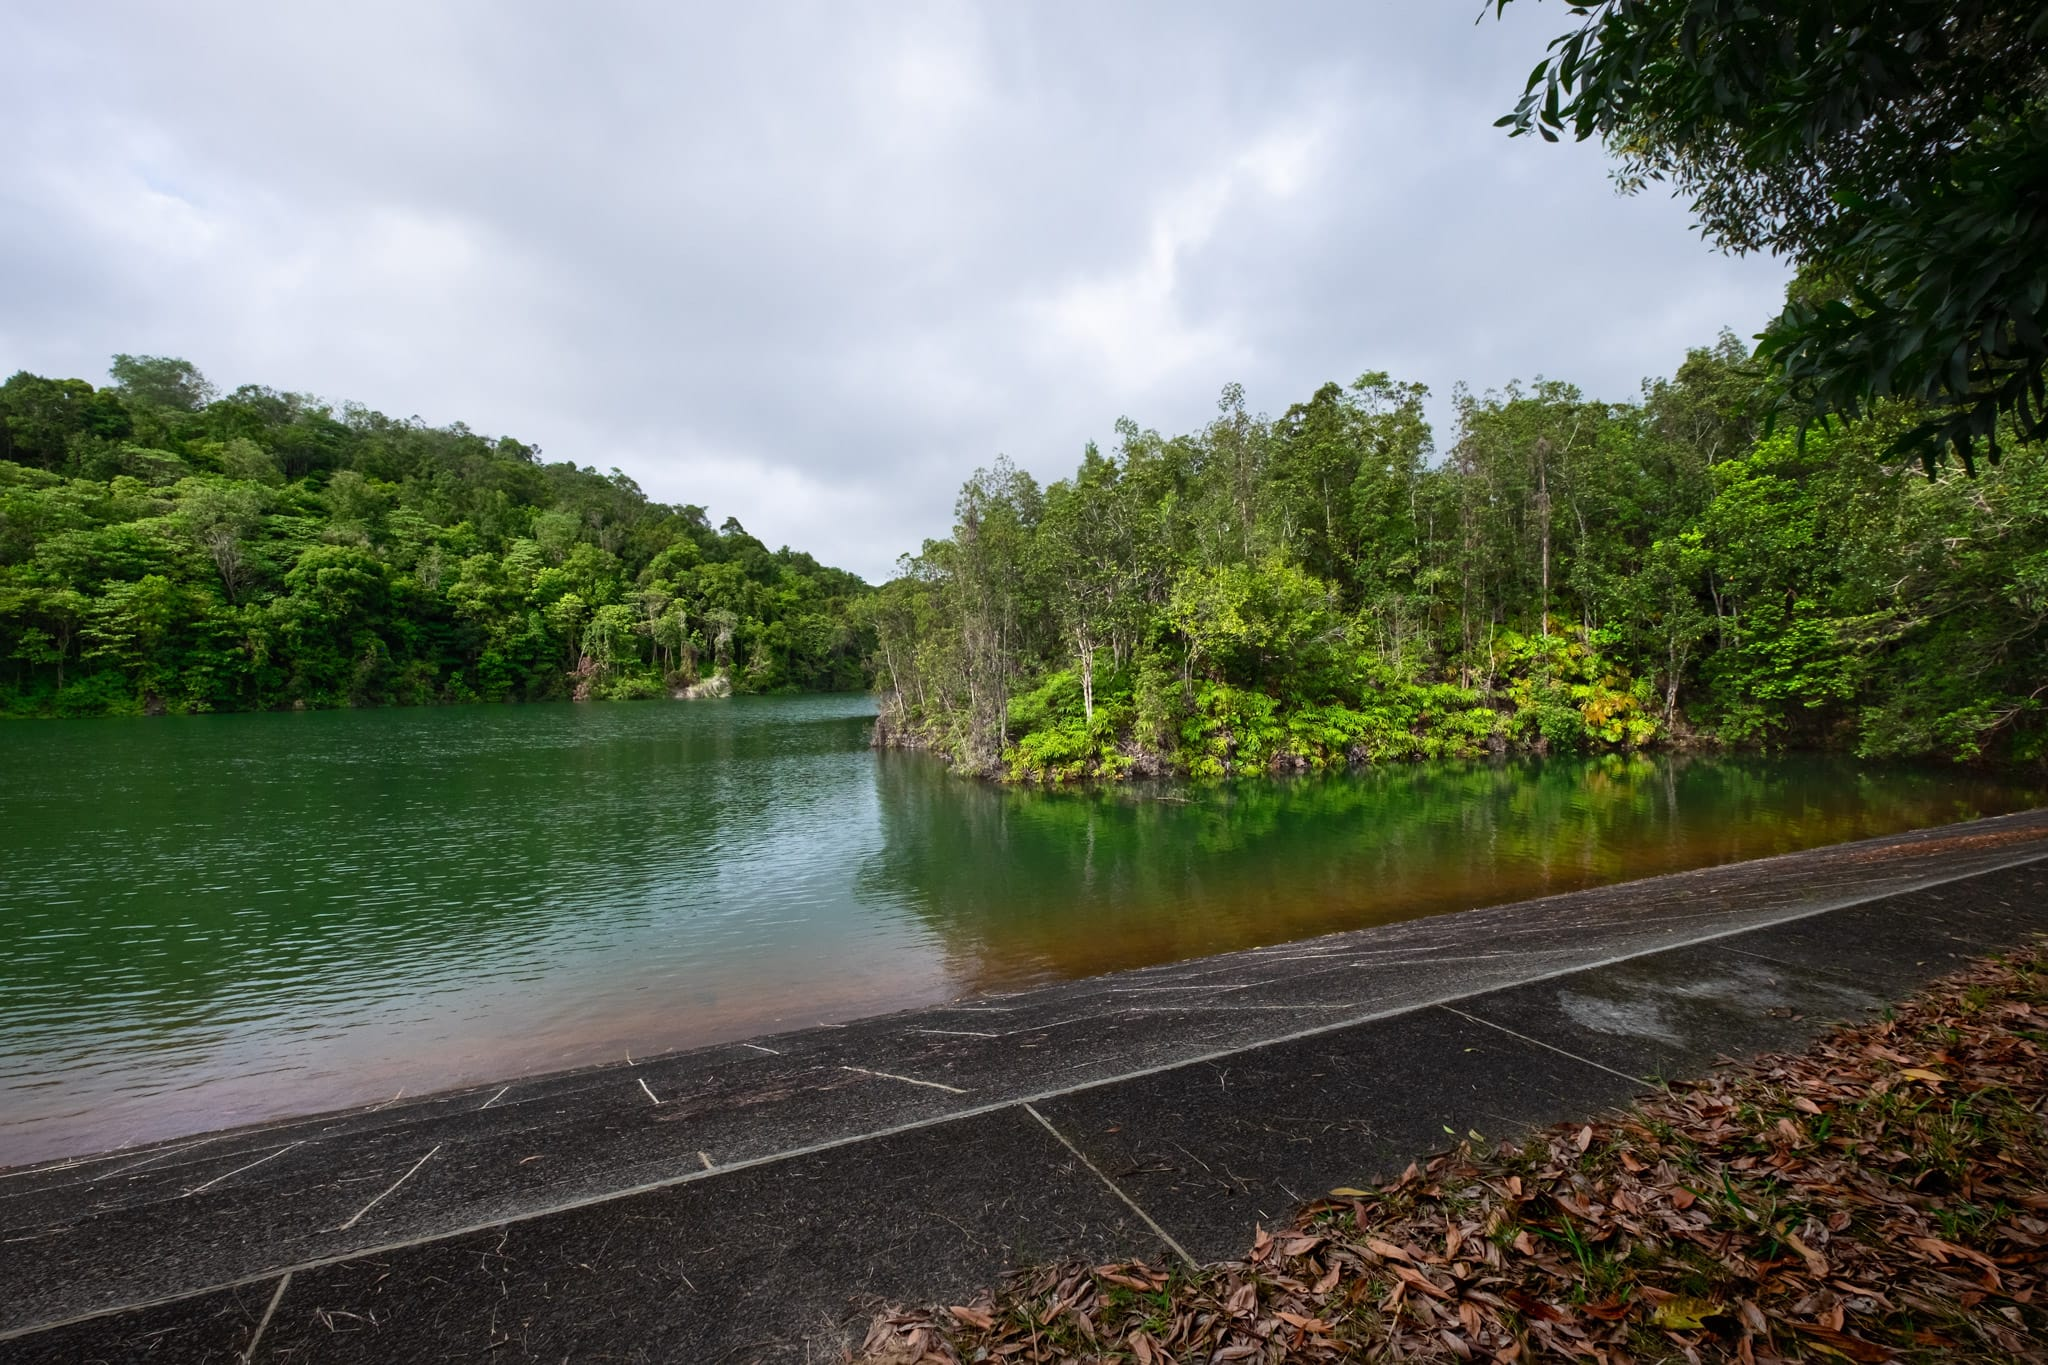 Reservoir at Tasek Lama Recreational Park. Bandar Seri Begawan, Brunei.